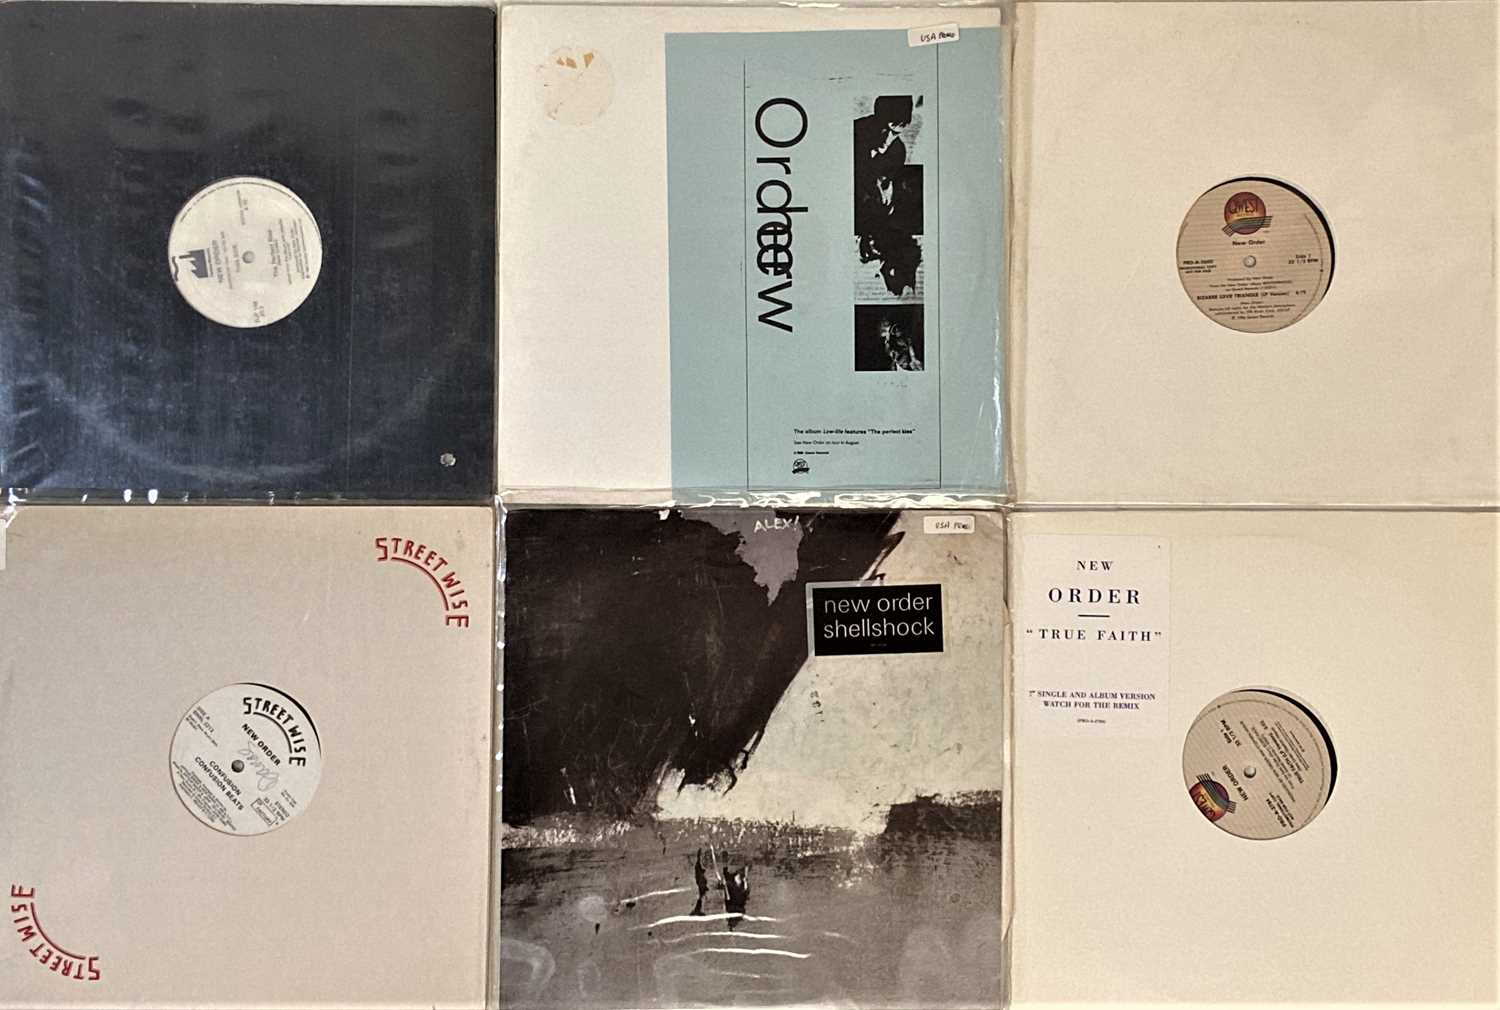 """NEW ORDER - US 12"""" PROMOS. - Image 2 of 2"""